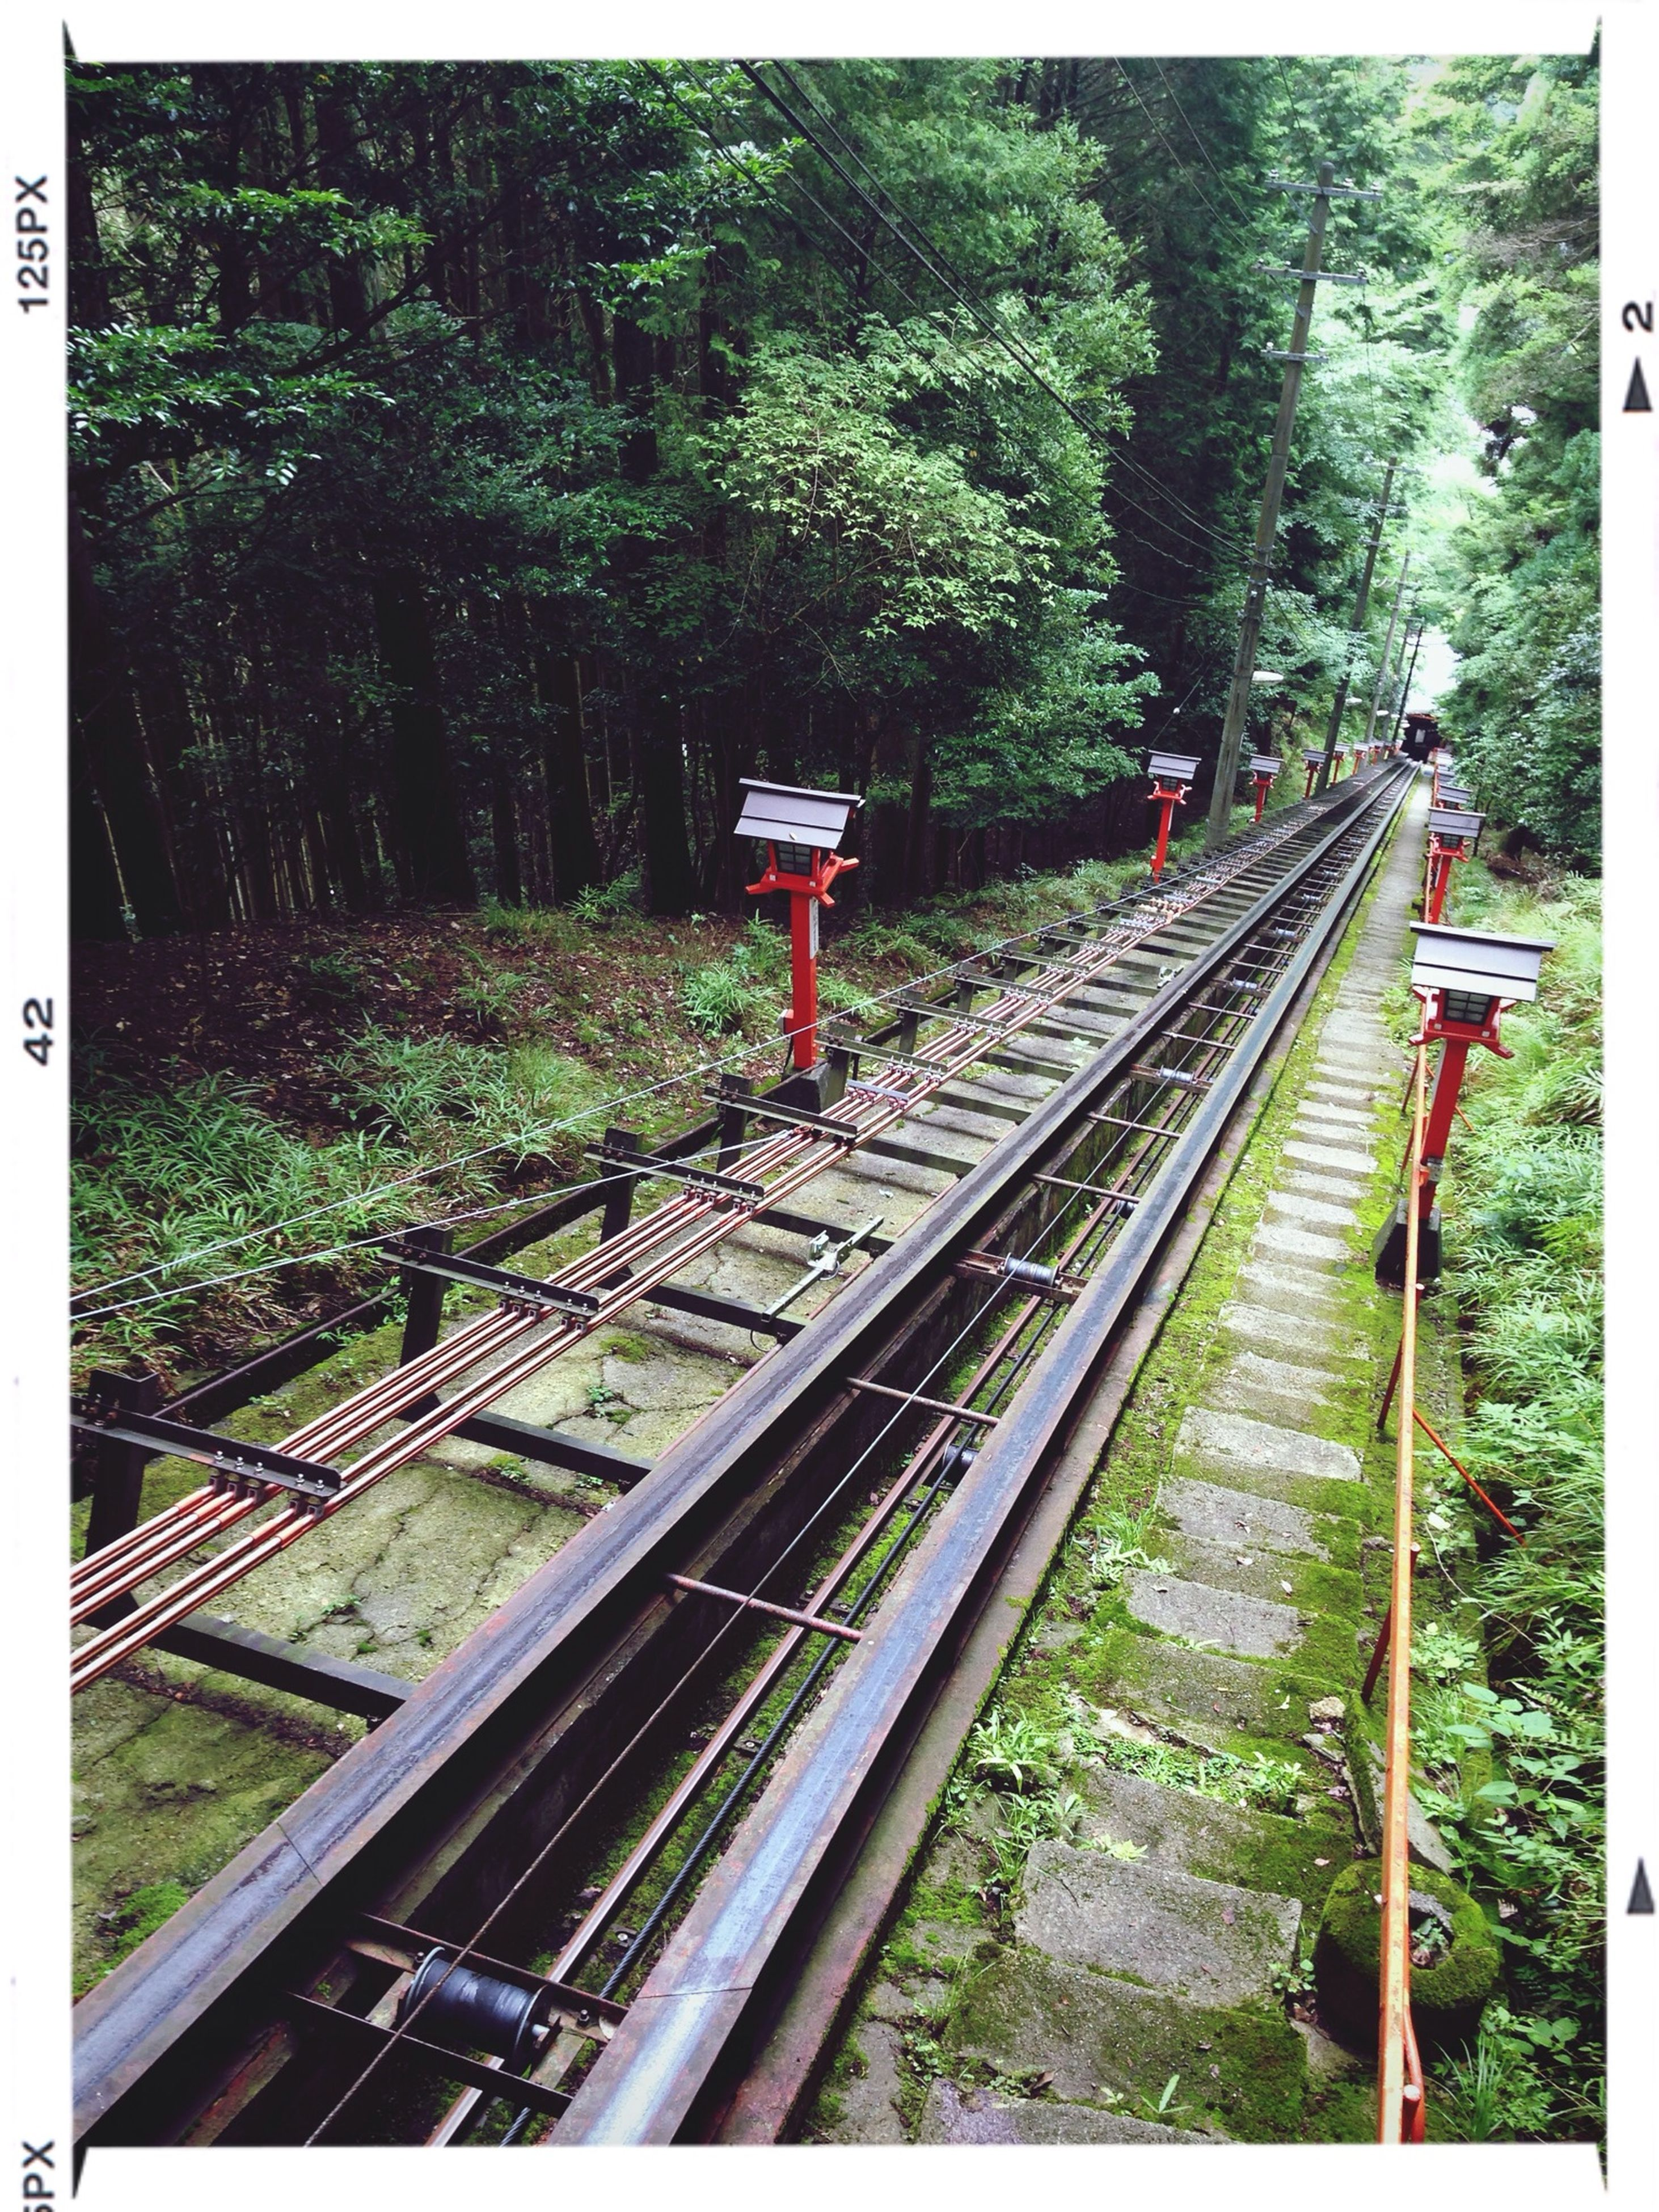 railroad track, transportation, rail transportation, transfer print, public transportation, tree, auto post production filter, railroad station platform, train - vehicle, connection, the way forward, railway track, high angle view, railroad station, diminishing perspective, travel, train, vanishing point, forest, mode of transport